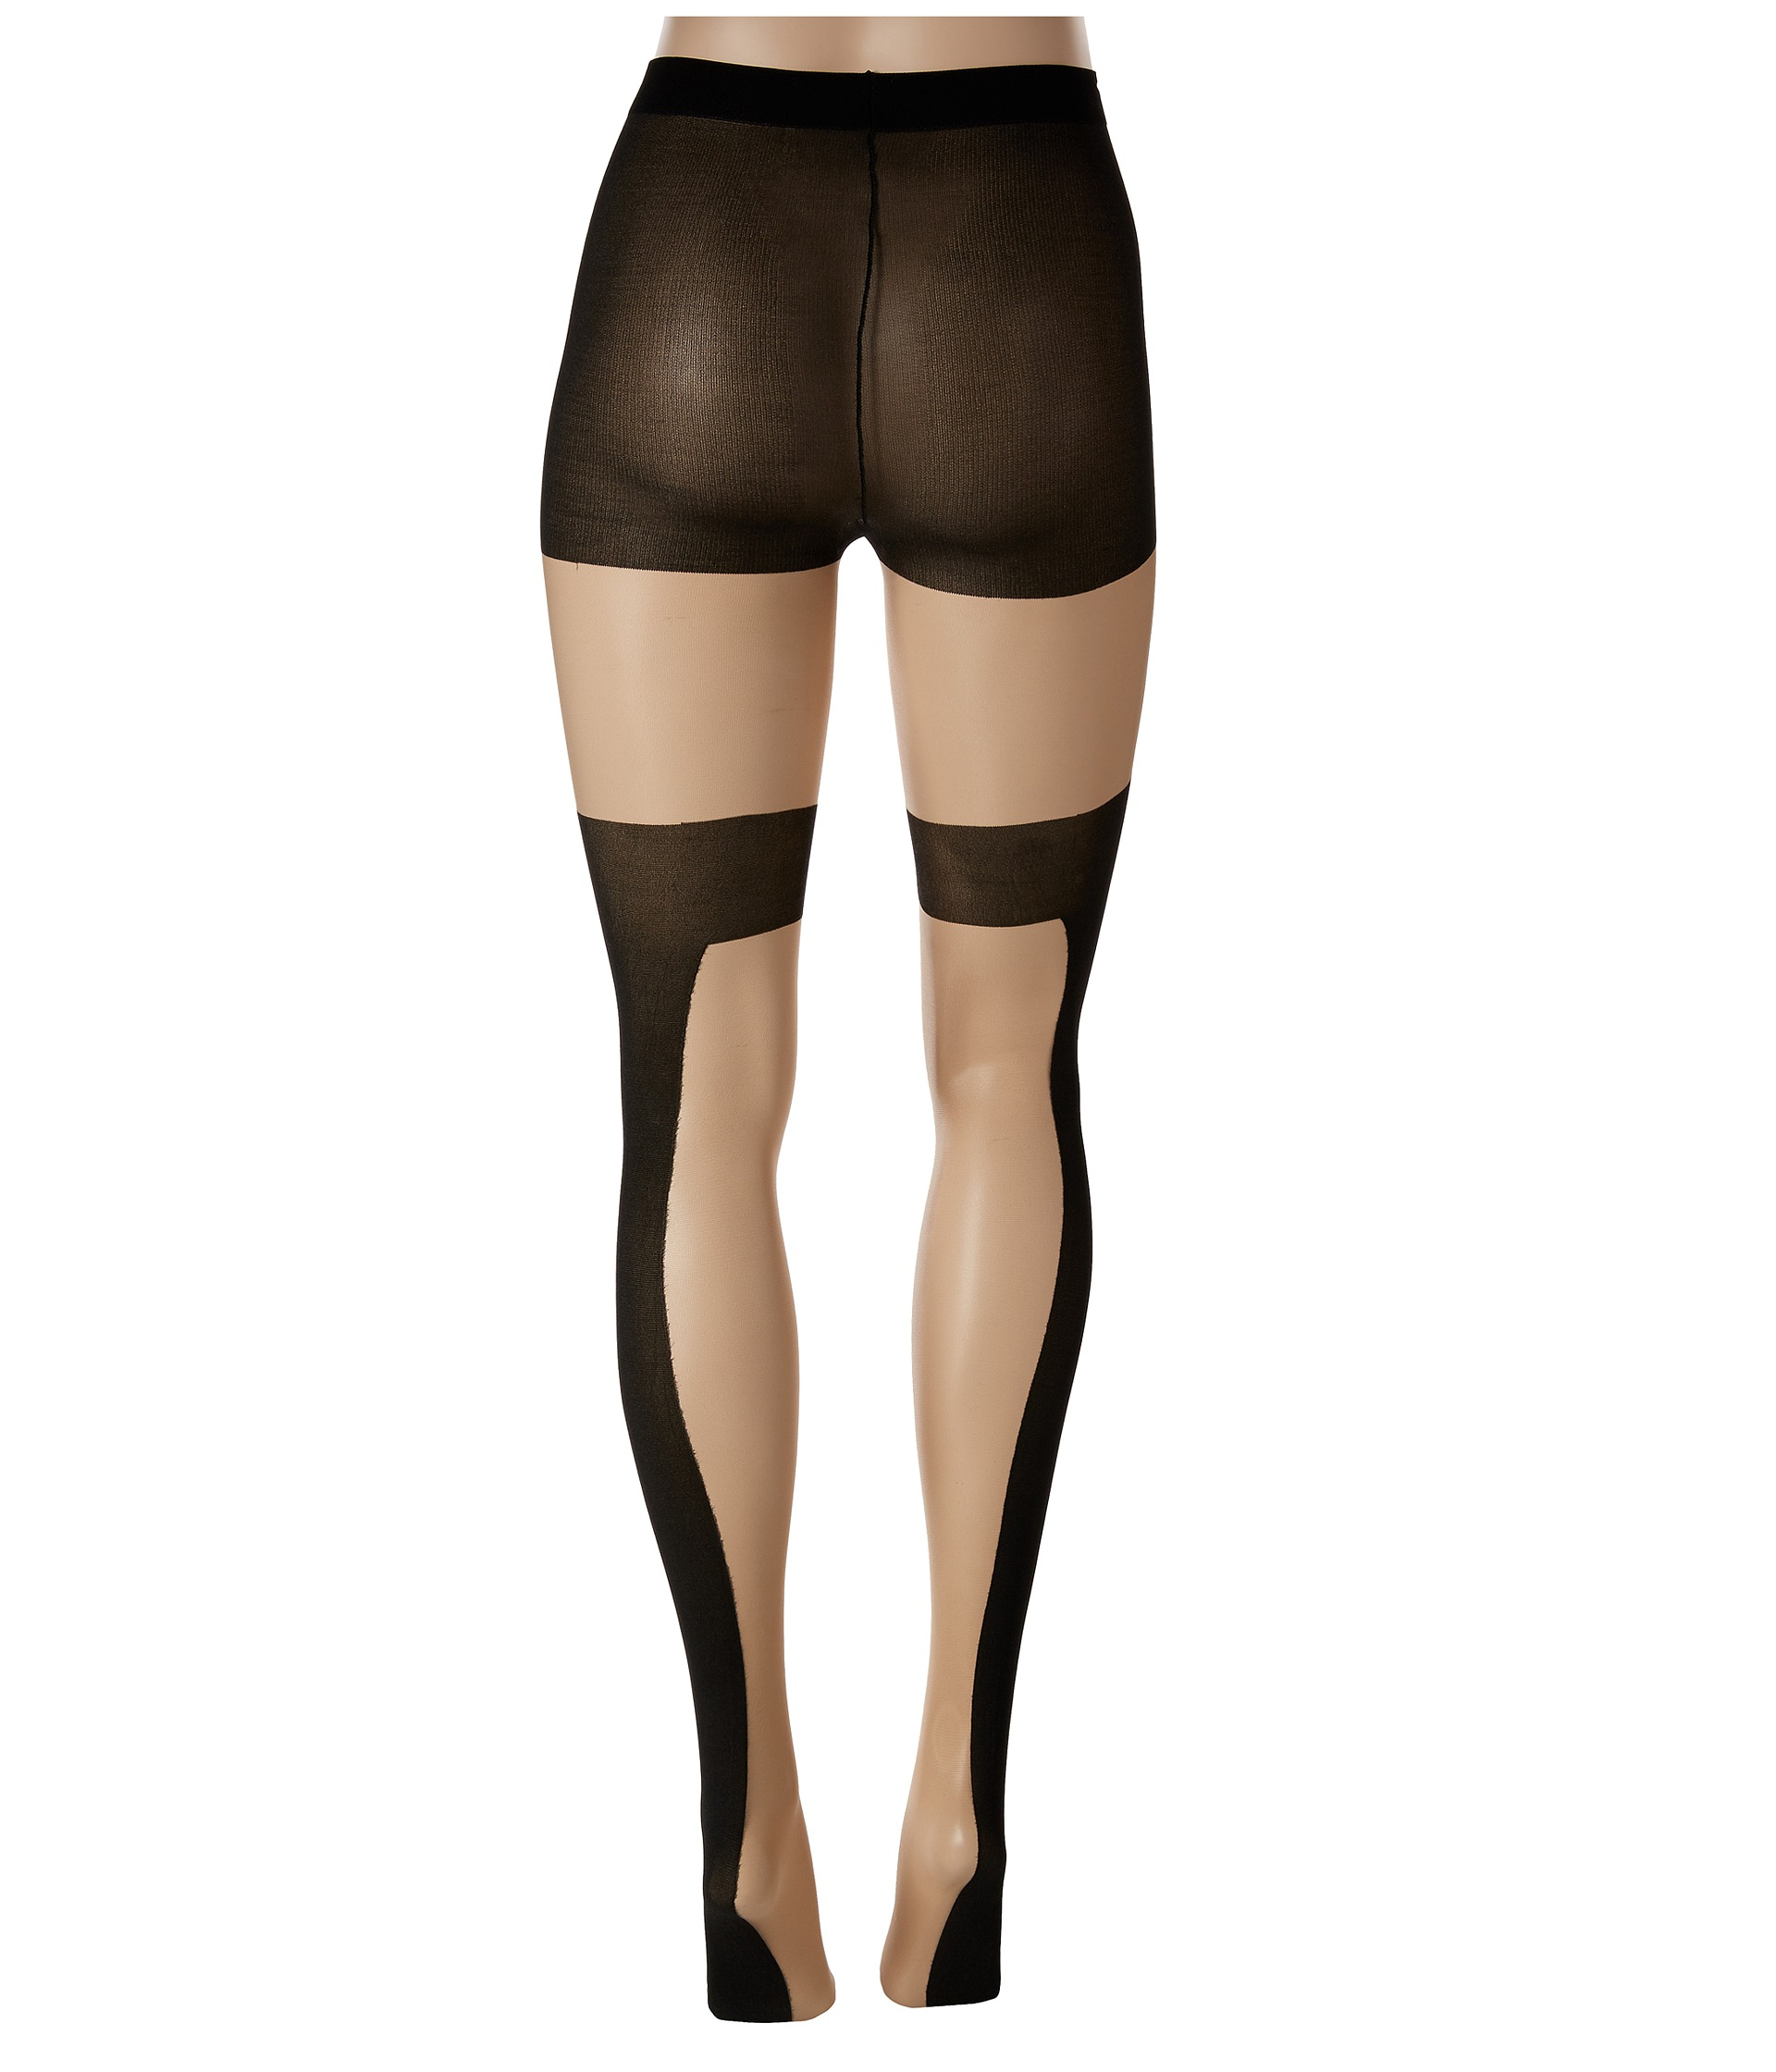 514ef7742c864 Women tights for every occasion The best ally in a woman's closet, tights  can change